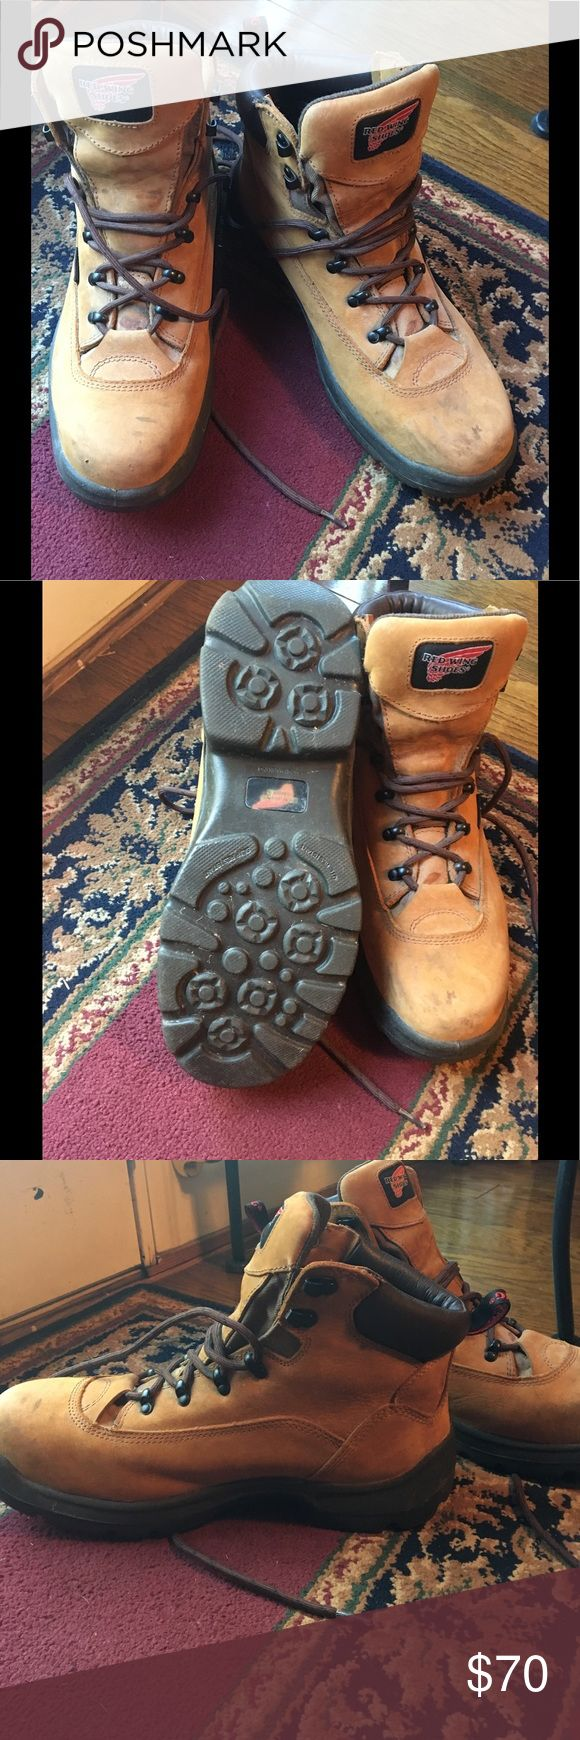 "Red Wing Steel Toe Work Boots Size 11EE Nice used Red Wing Lace Work Boots. Has Steel Toe and is waterproof. Size 11EE. Husband wore few times then went  to his ""collection"" in closet. No Box, No insoles. Soles are in great condition! Red Wing Shoes Shoes Boots"